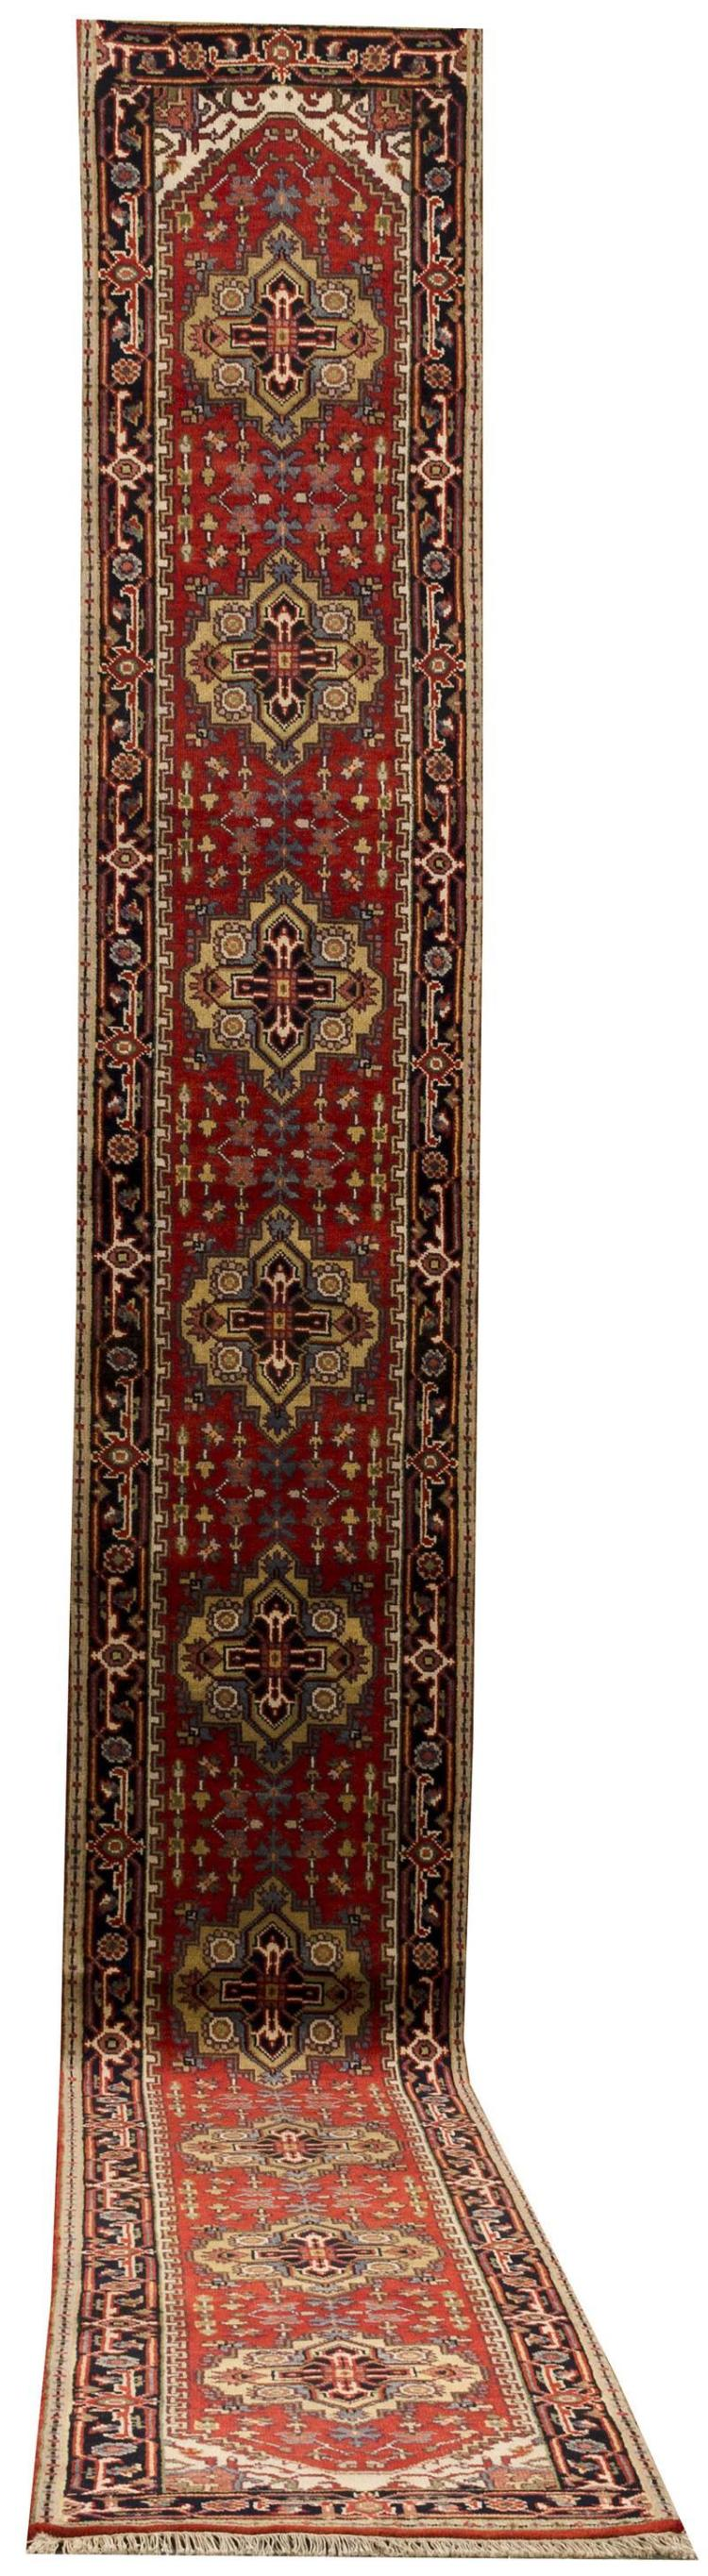 """ORIENTAL RUG: SERAPI DESIGN RUNNER 2''7"""" x 23''0"""" Series of yellow and navy blue gabled medallions cross a tomato red field and are su."""